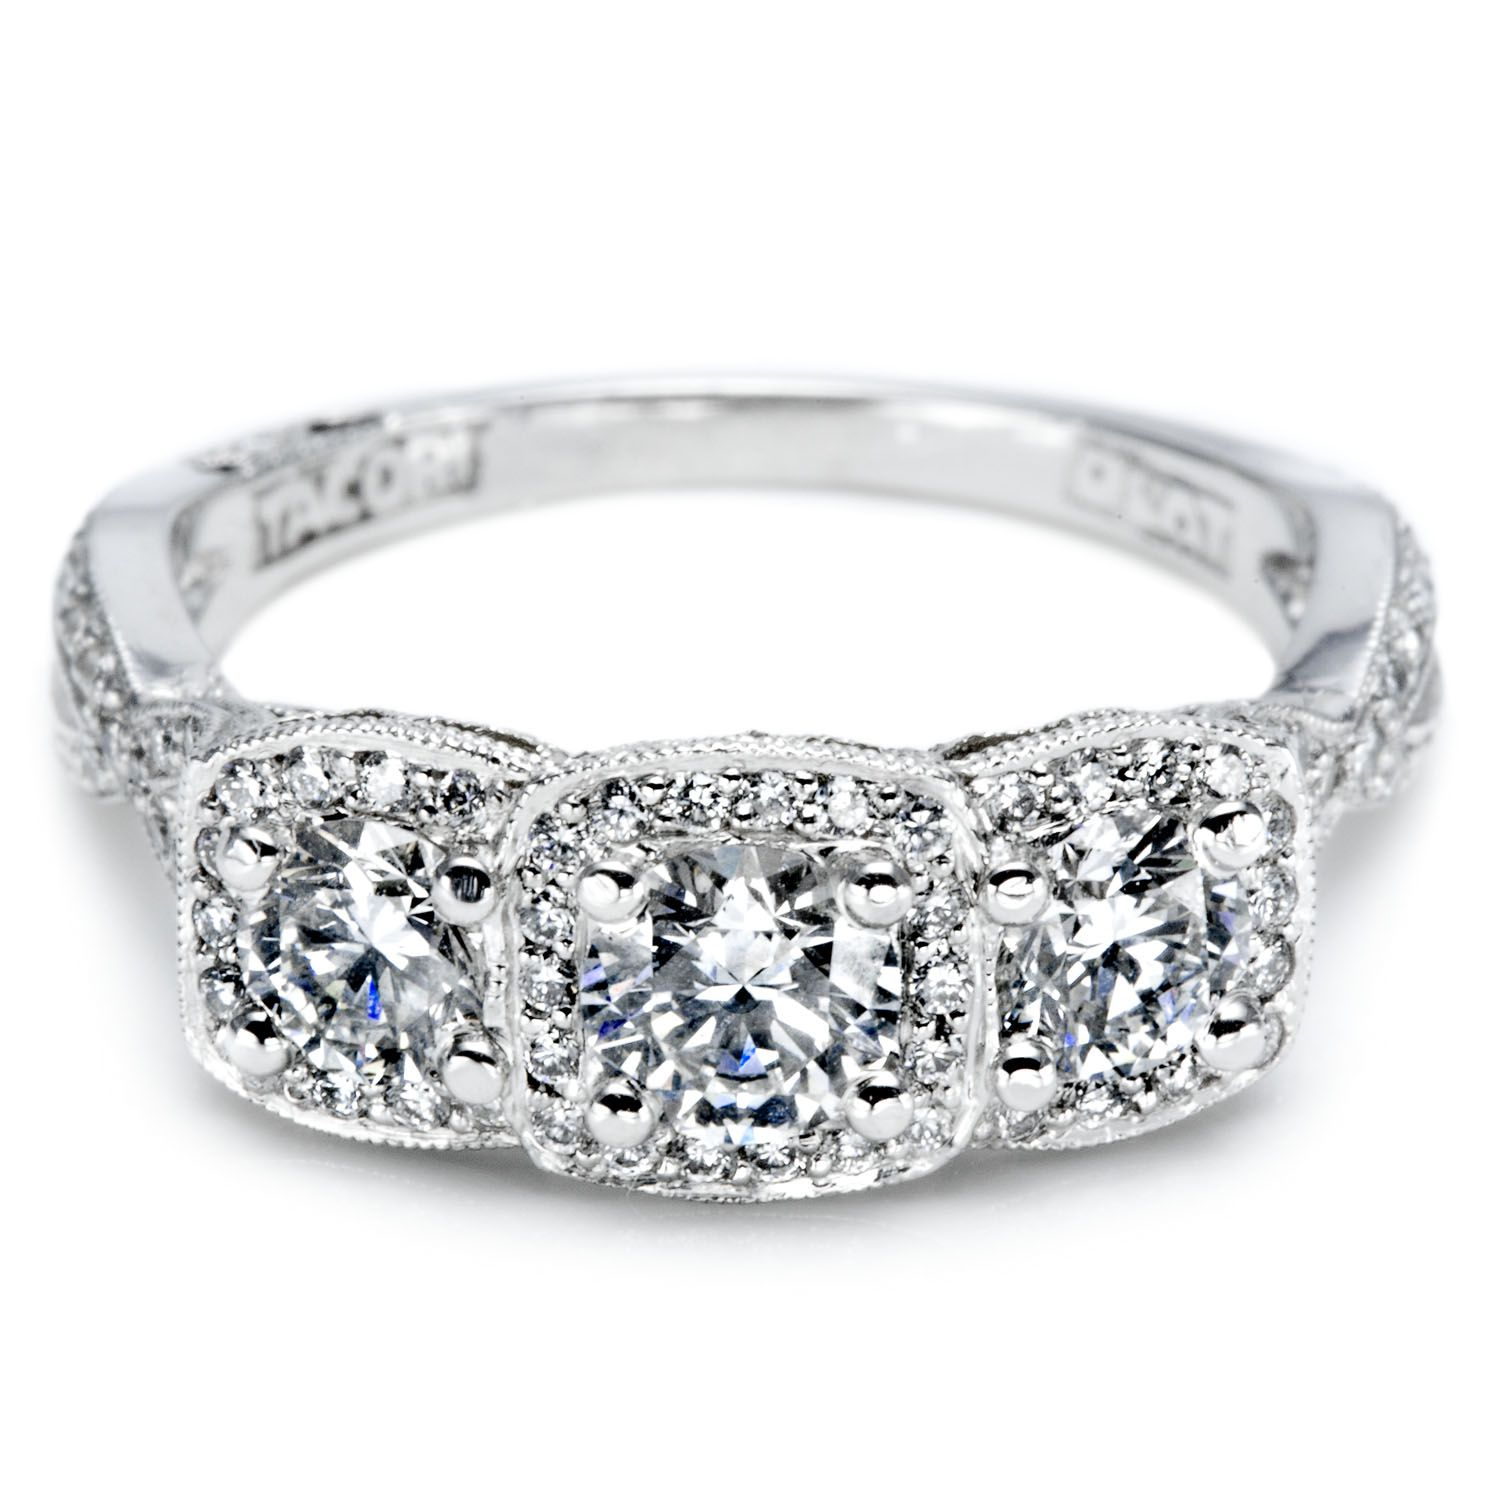 Unique Diamond Anniversary Rings | View Some Examples Of Throughout Most Up To Date Princess Cut Diamond Criss Cross Anniversary Bands In White Gold (View 21 of 25)